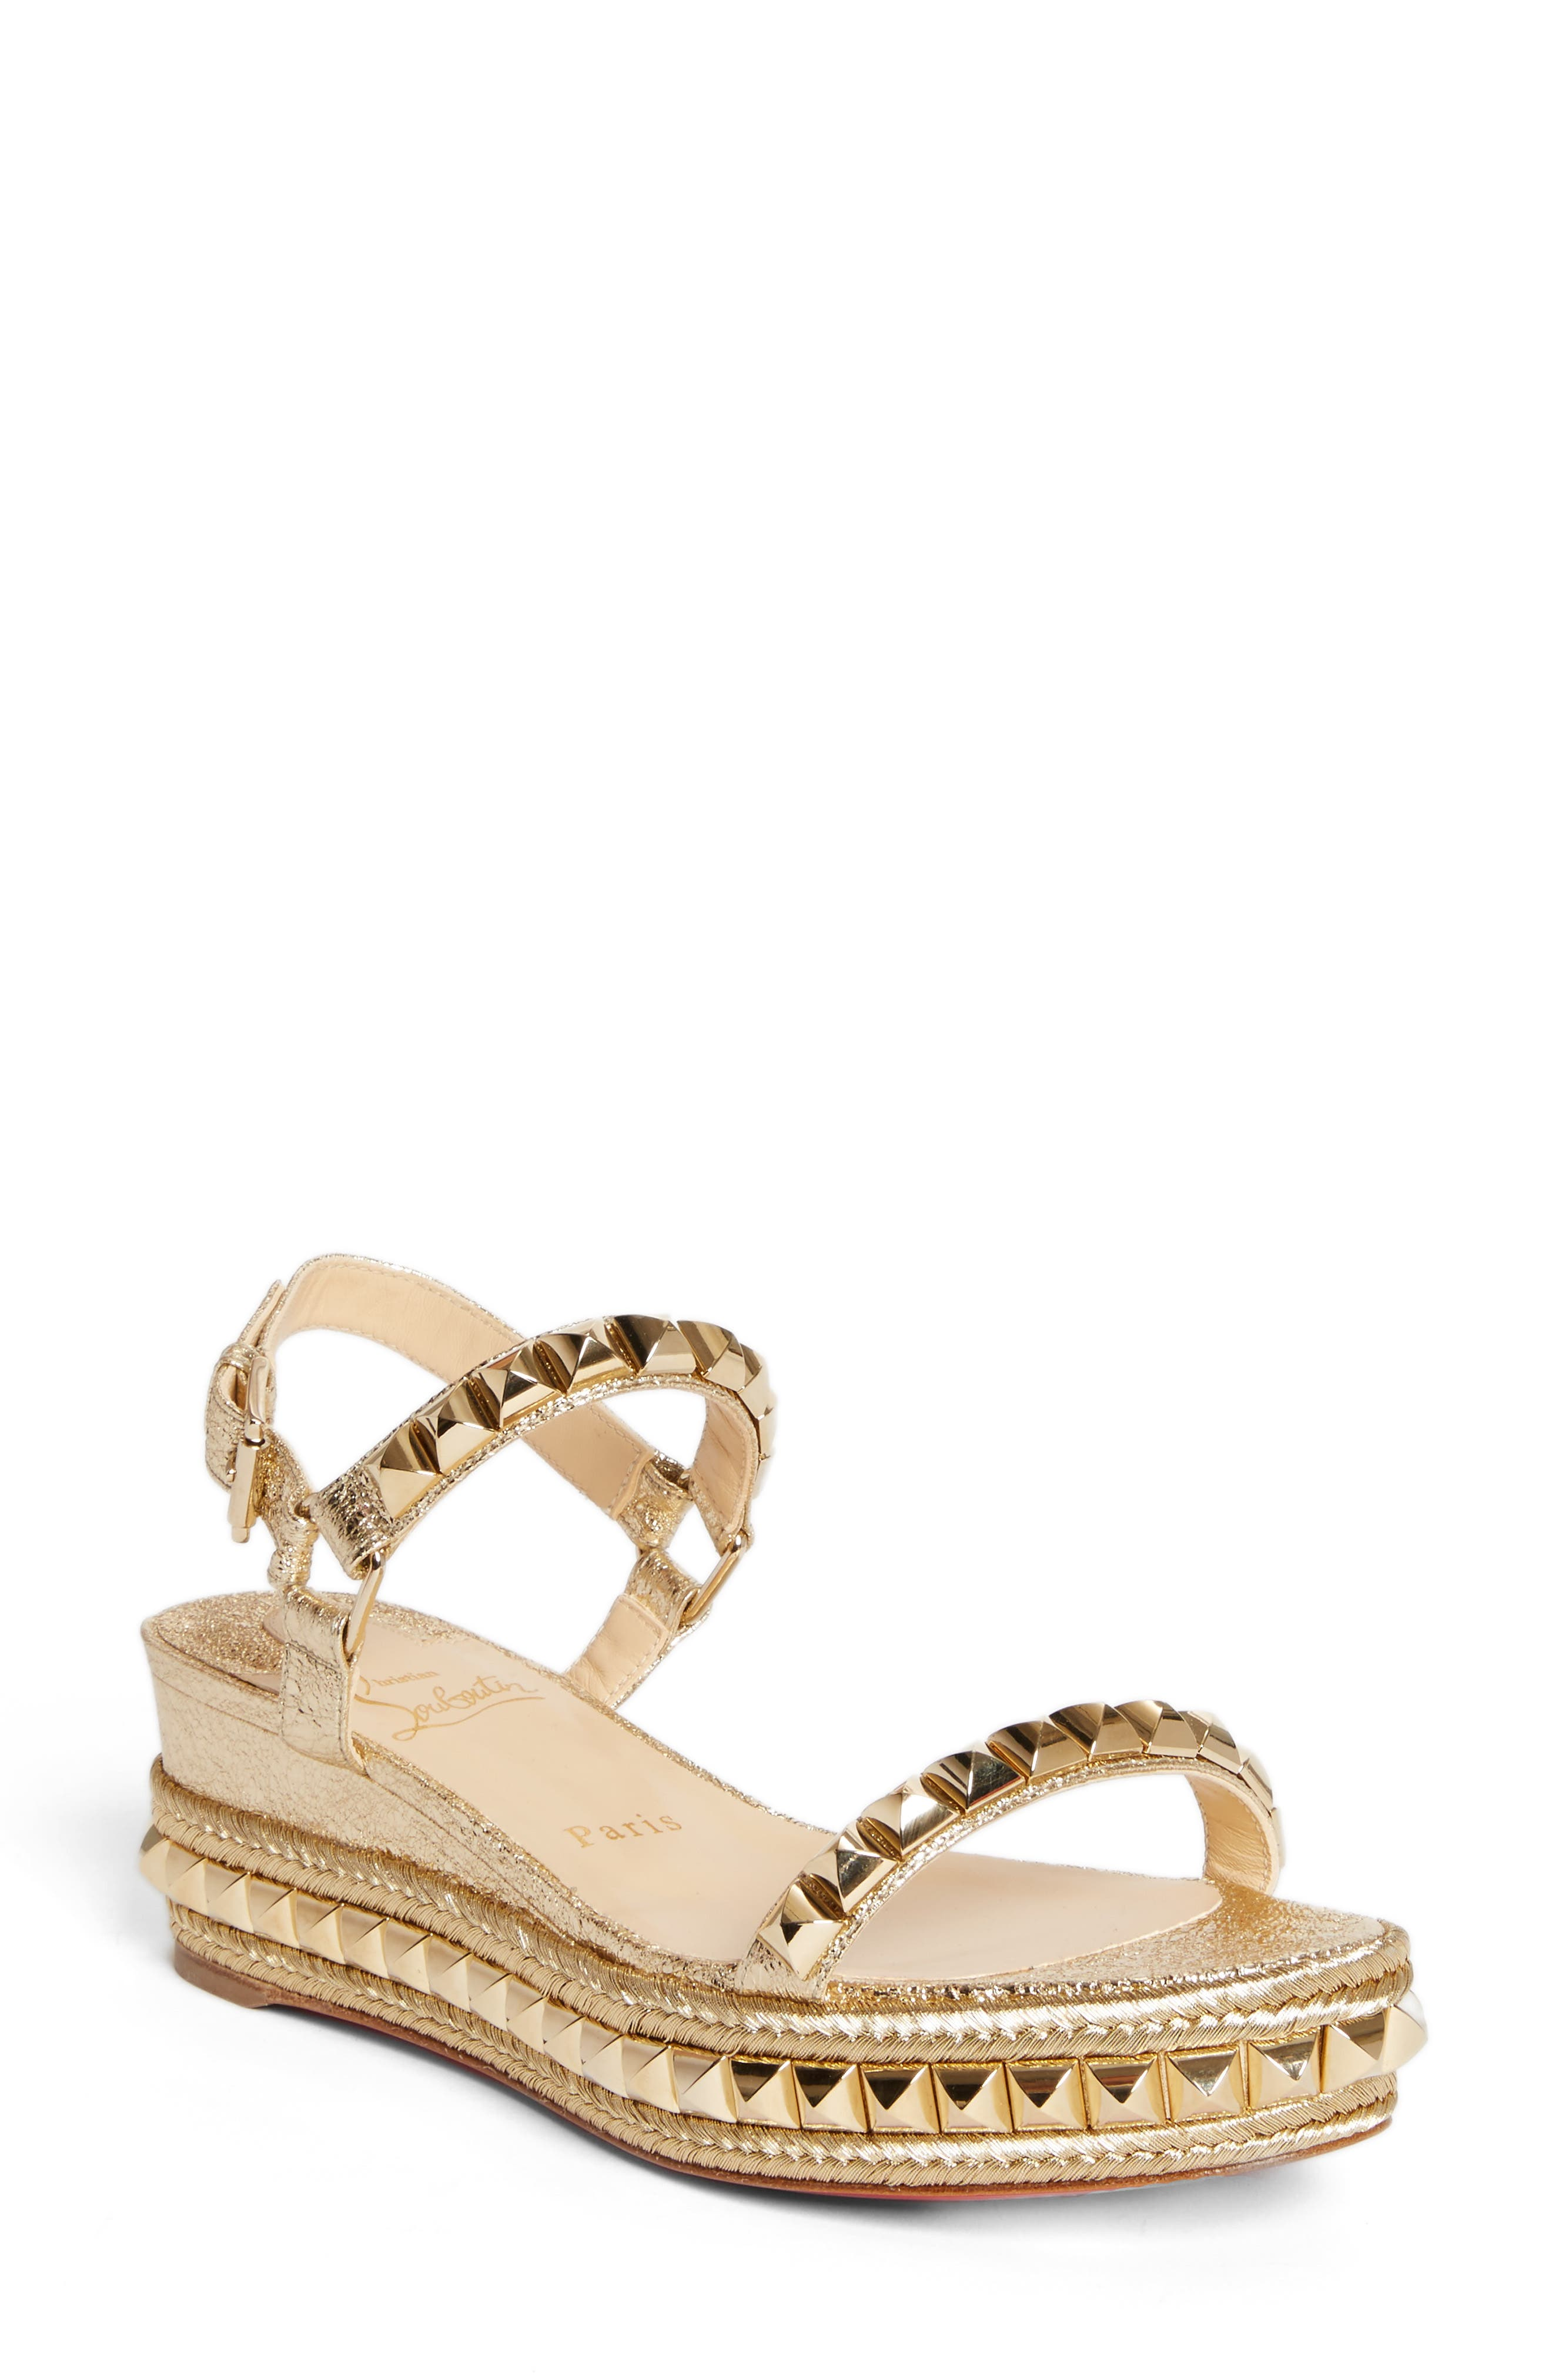 Alternate Image 1 Selected - Christian Louboutin Cataclou Espadrille Wedge Sandal